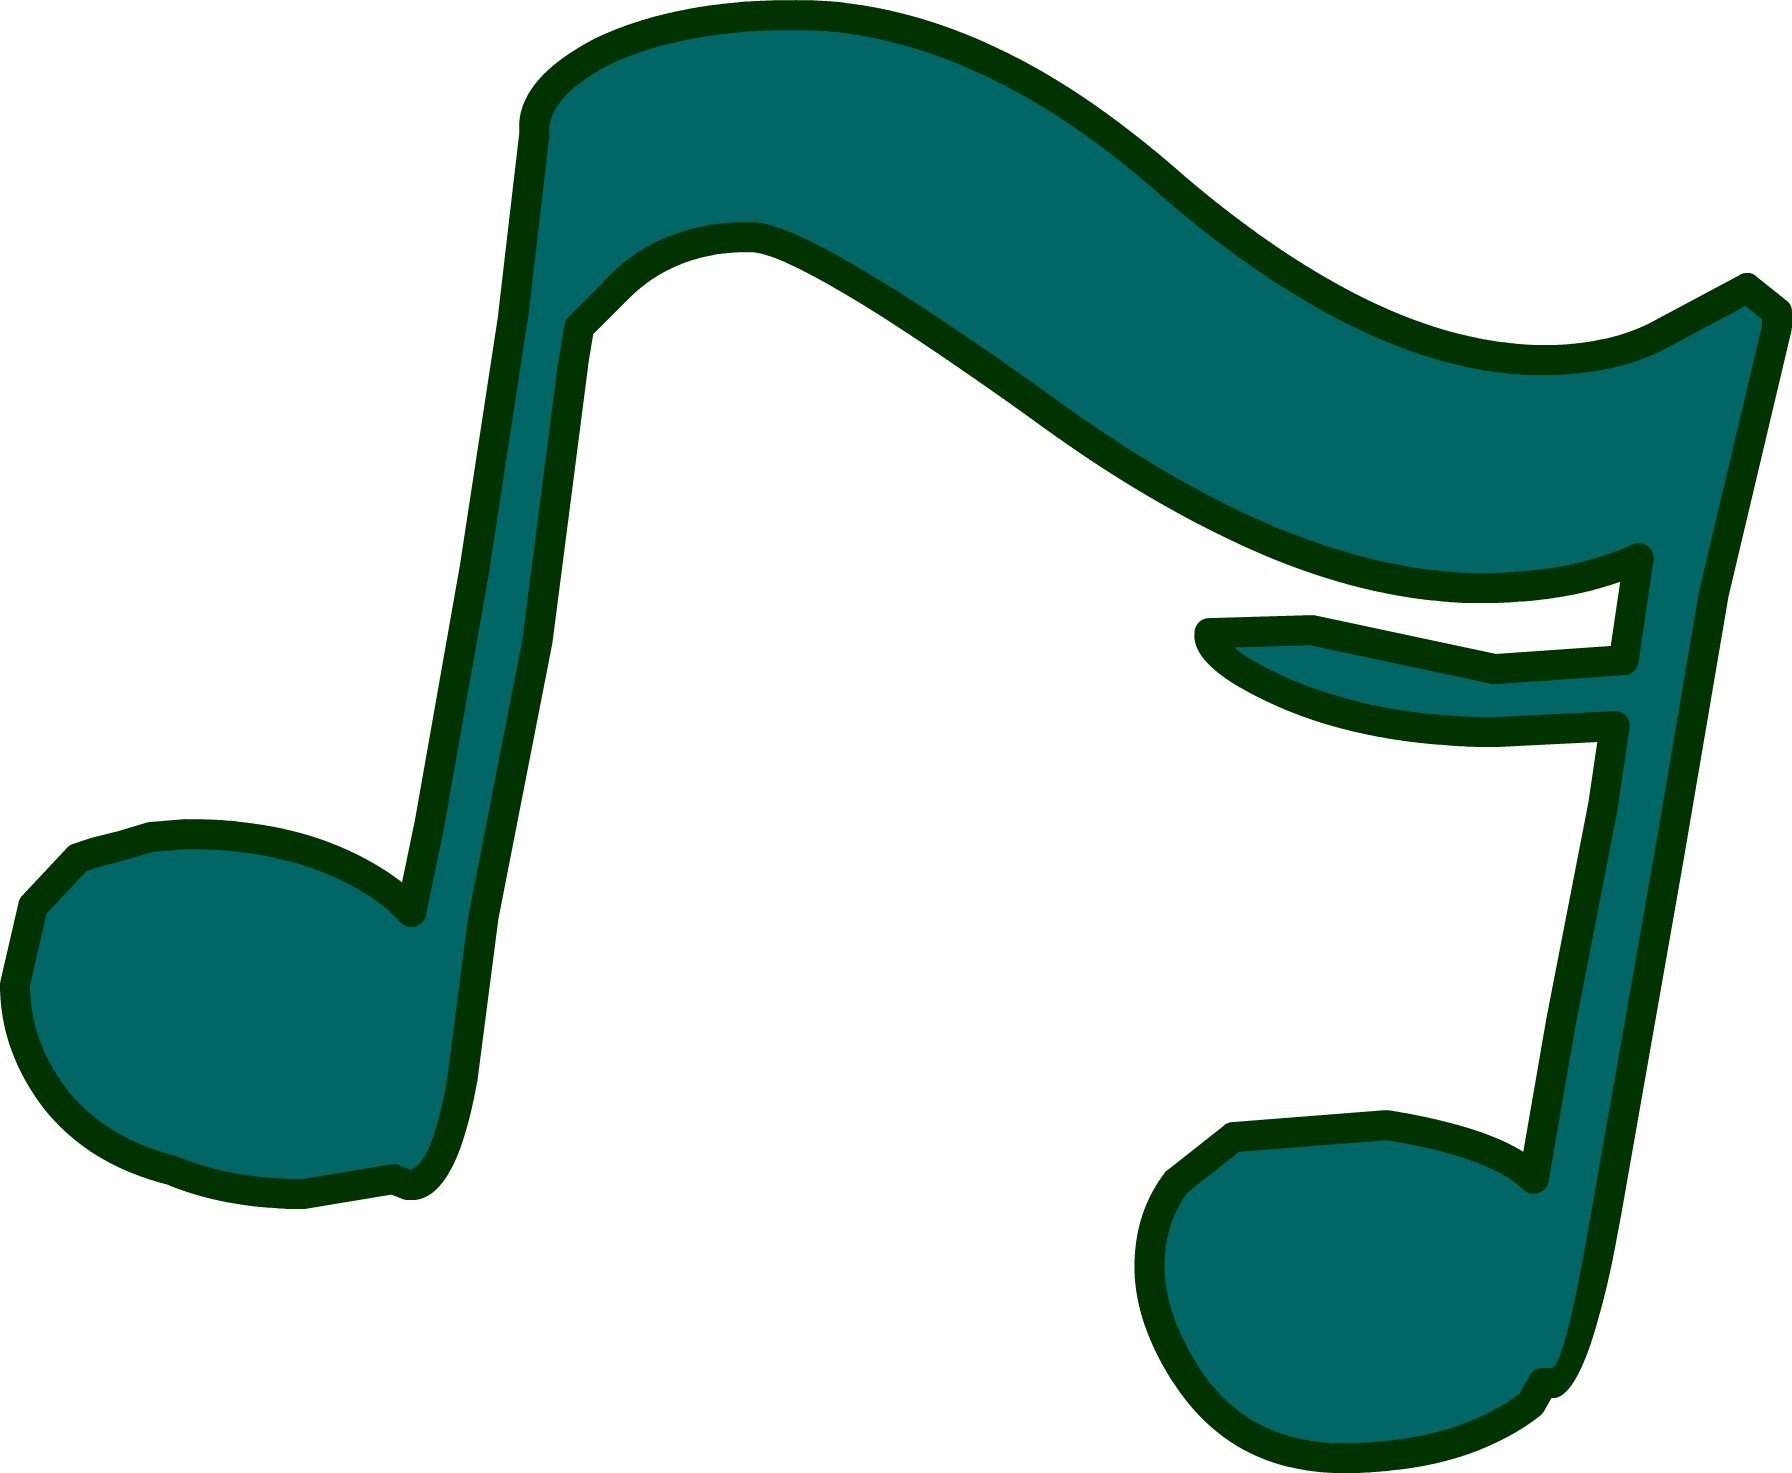 Eighth Note